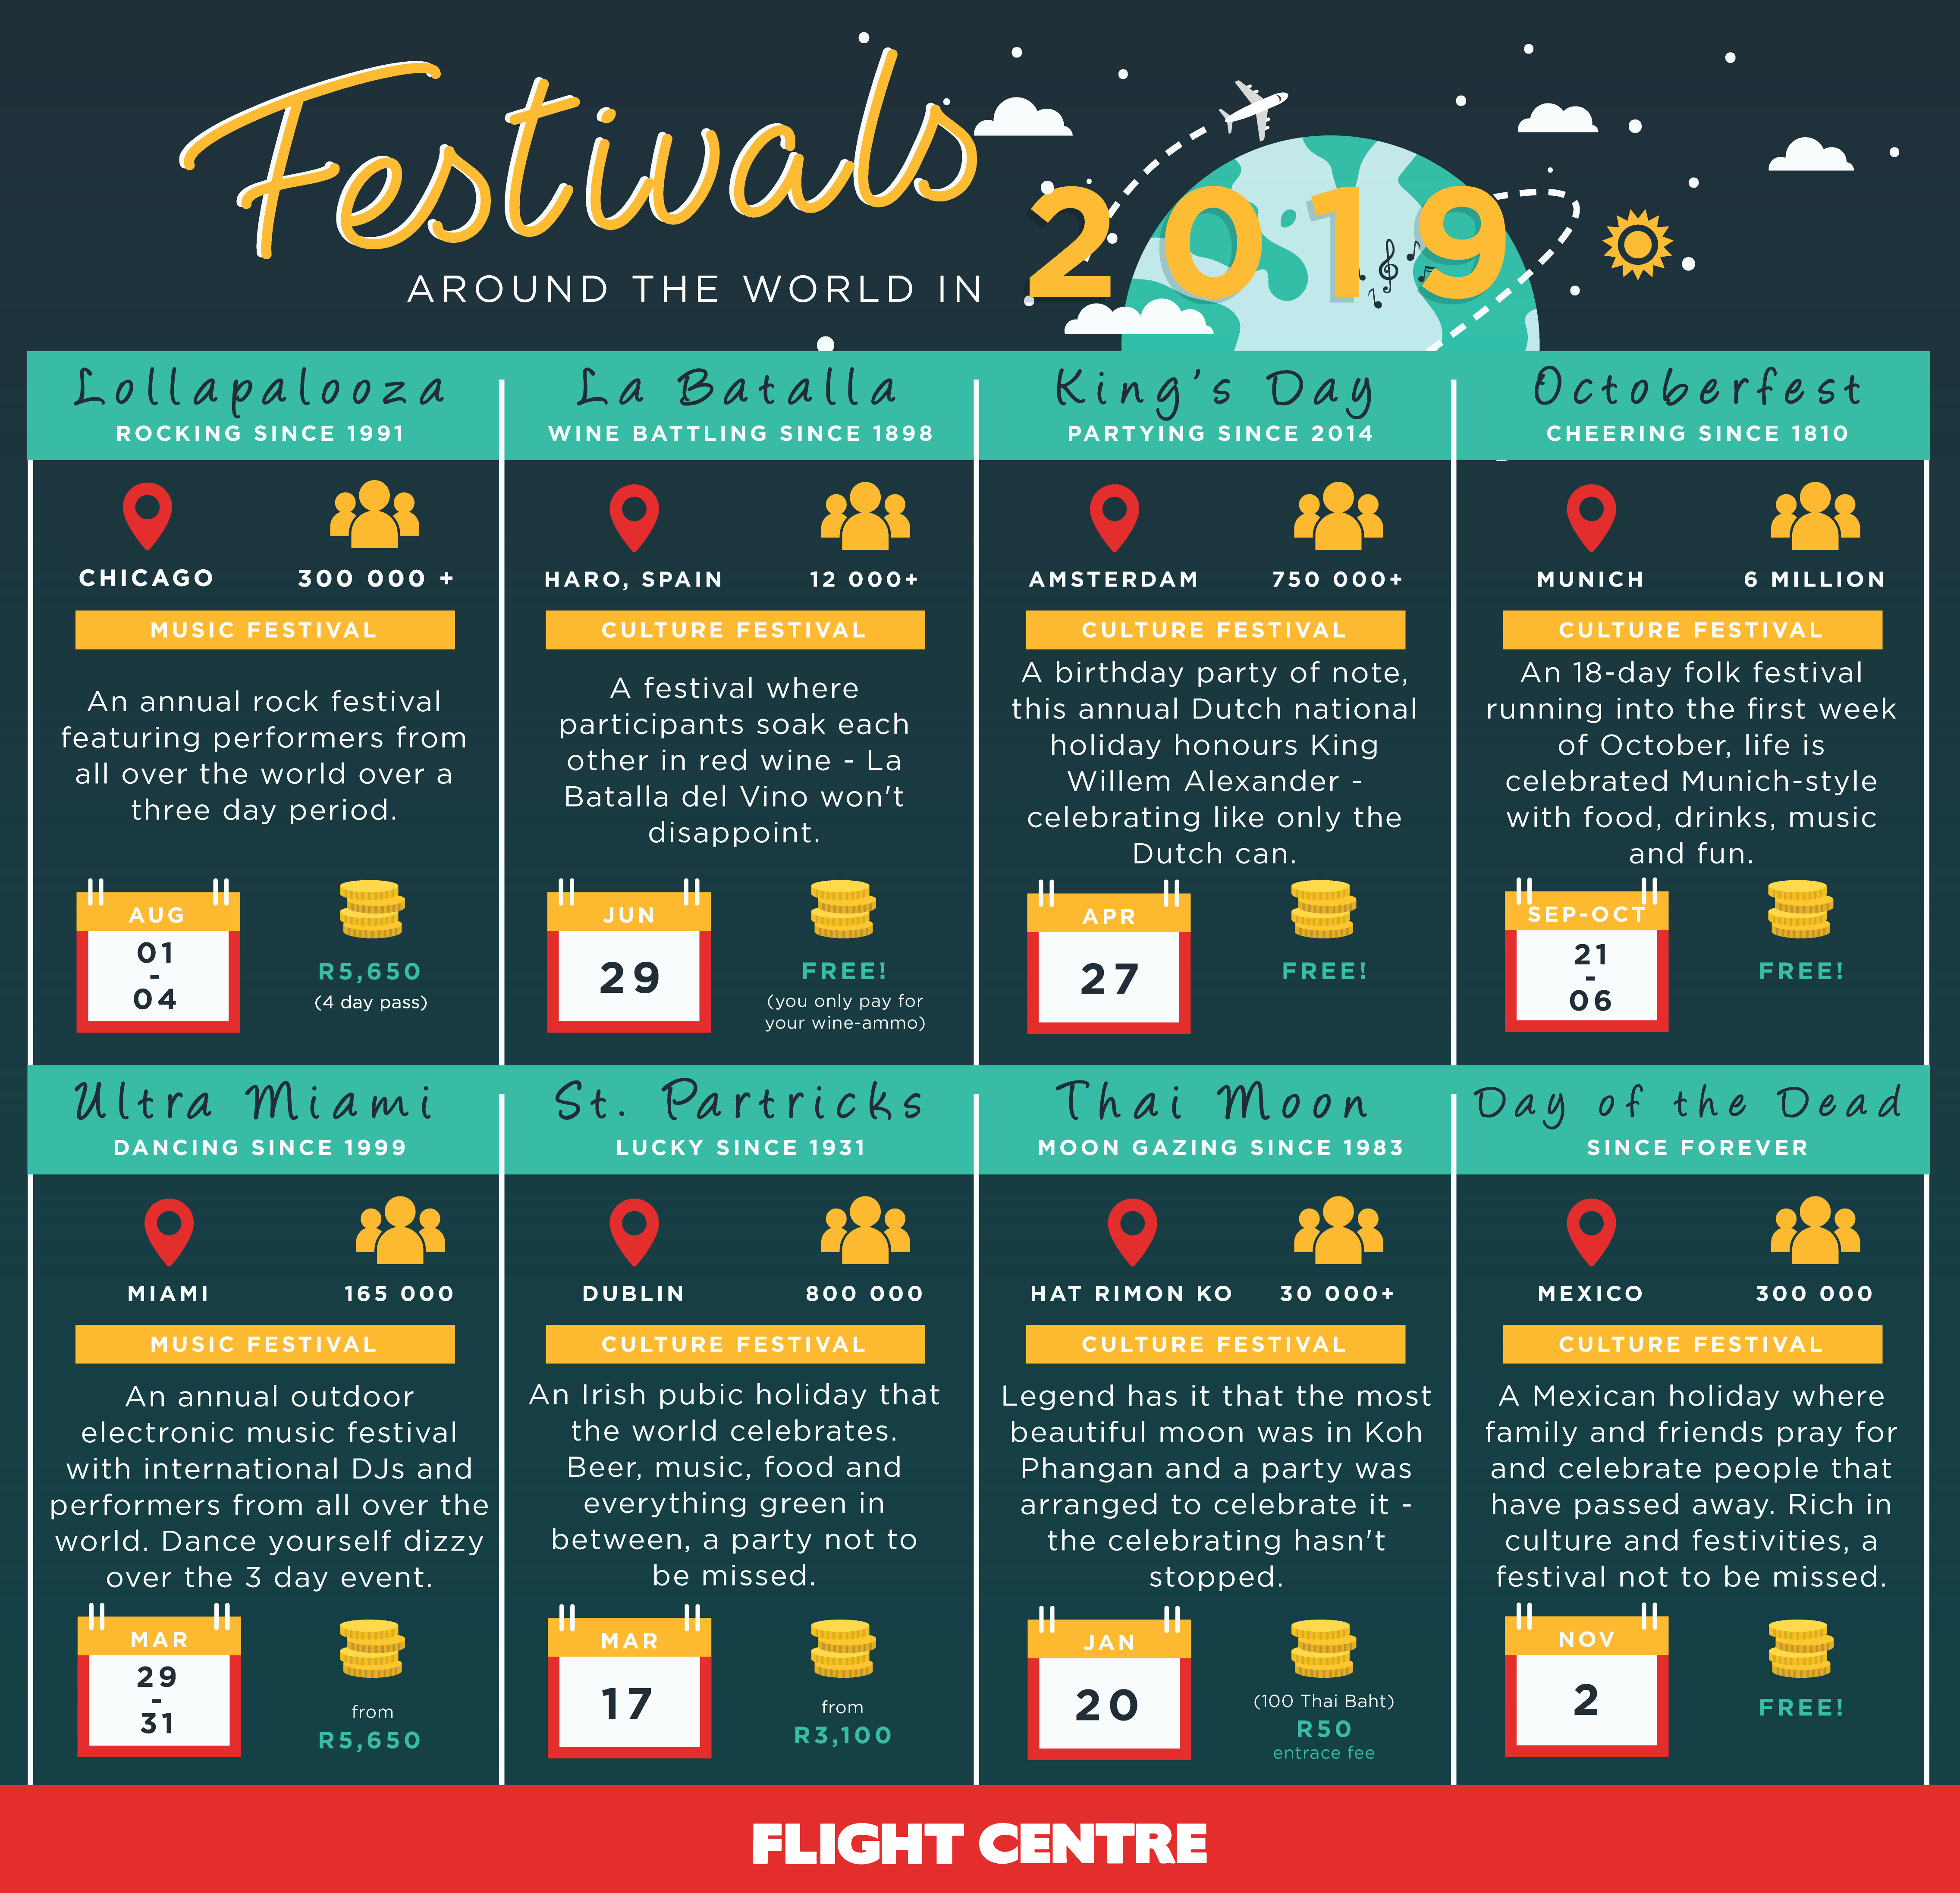 festivals-around-the-world-infographic.png